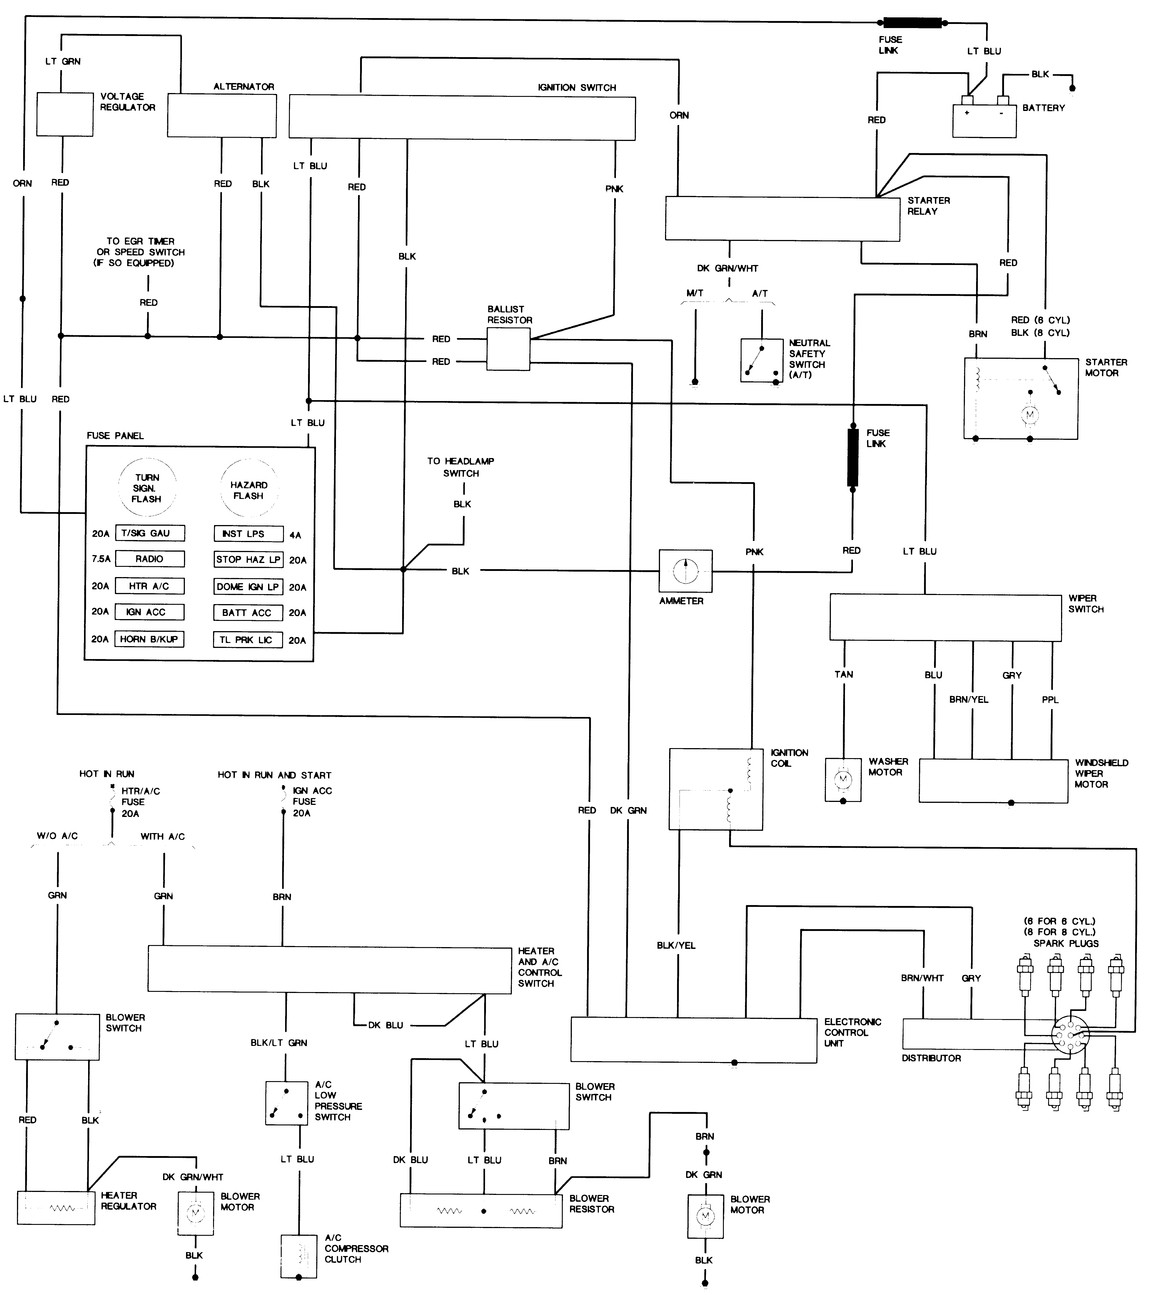 1975 Dodge Wiring Diagram - 9.xeghaqqt.petportal.info • on dodge truck wiring diagram, dodge trailer wiring diagram, dodge caravan wiring diagram,